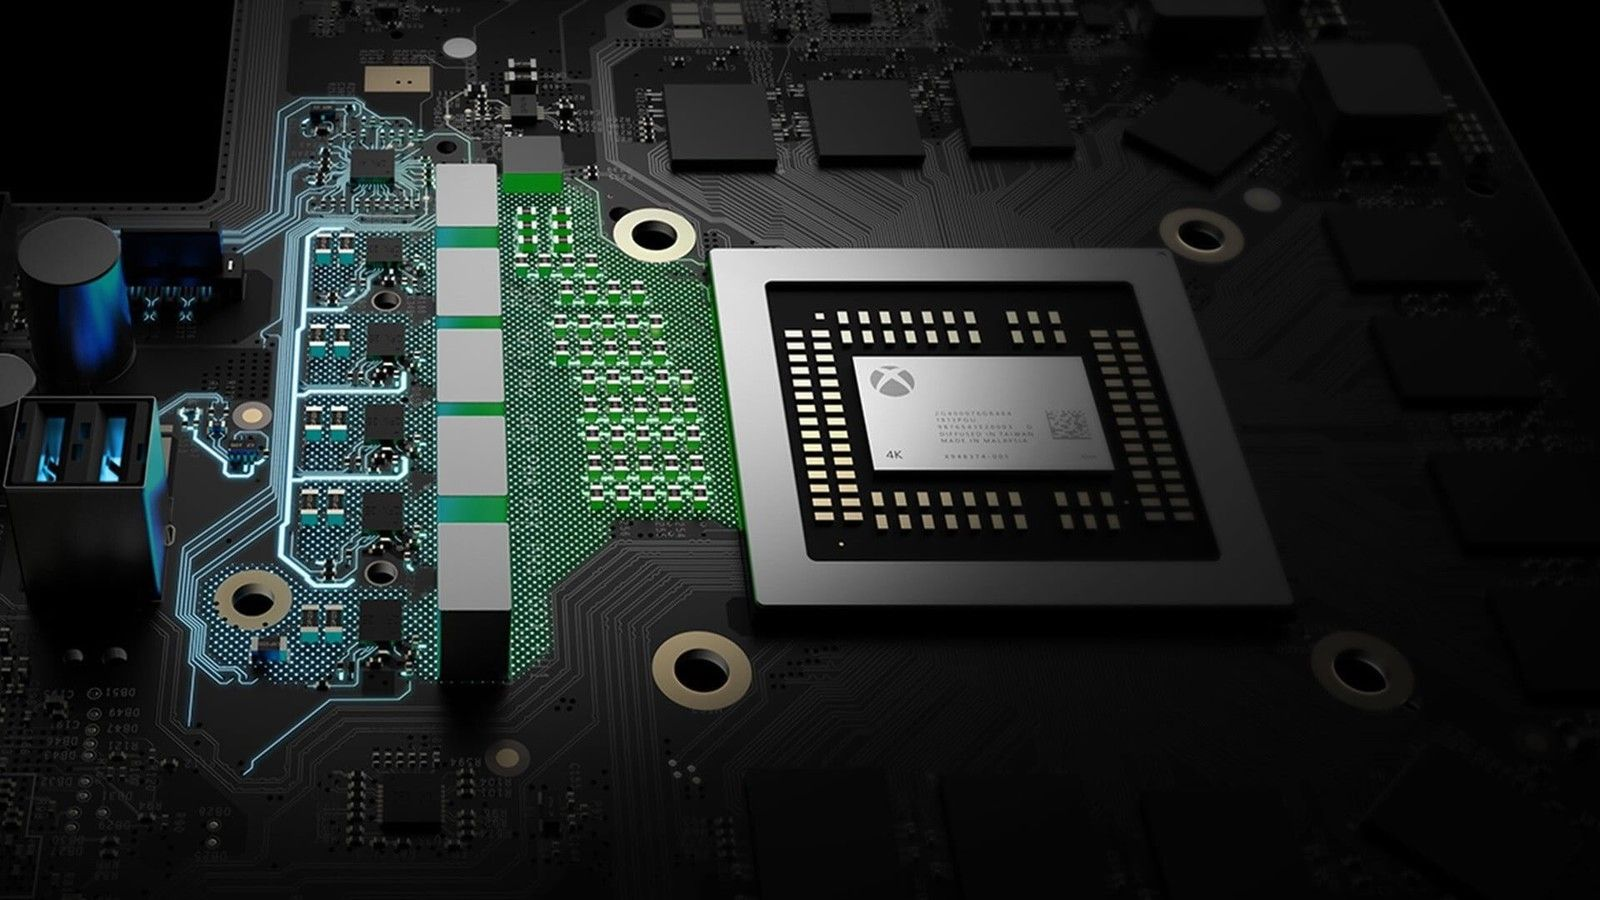 1600x900 Xbox One X versus PlayStation 4 Pro: Which high-end console brings ...